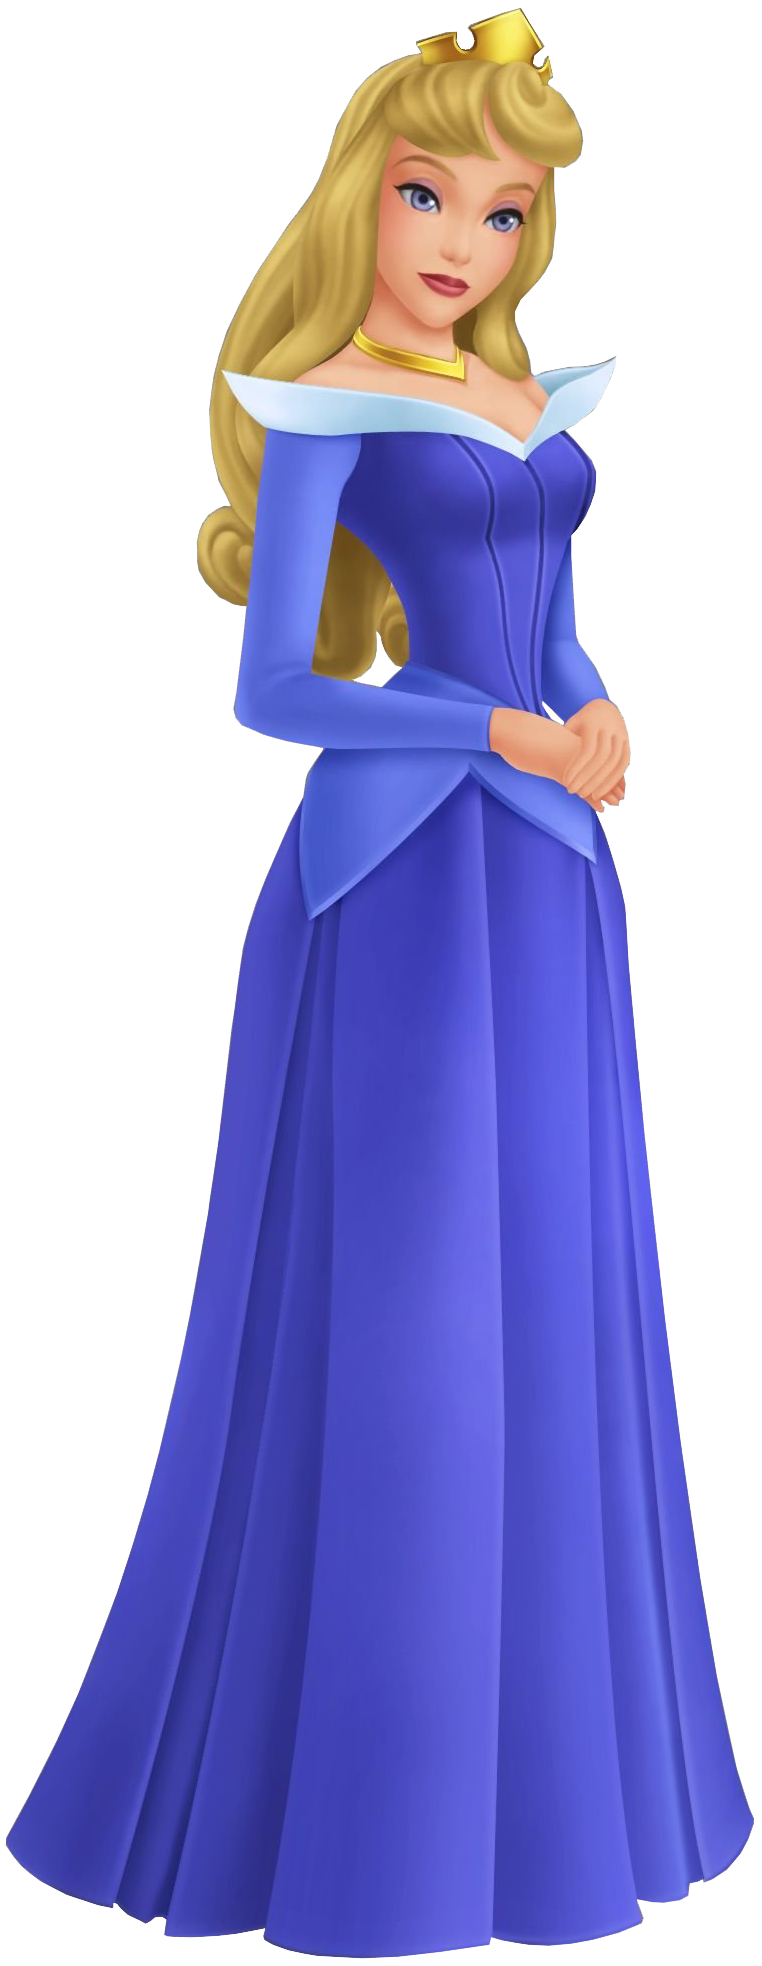 Blue dress character attributes